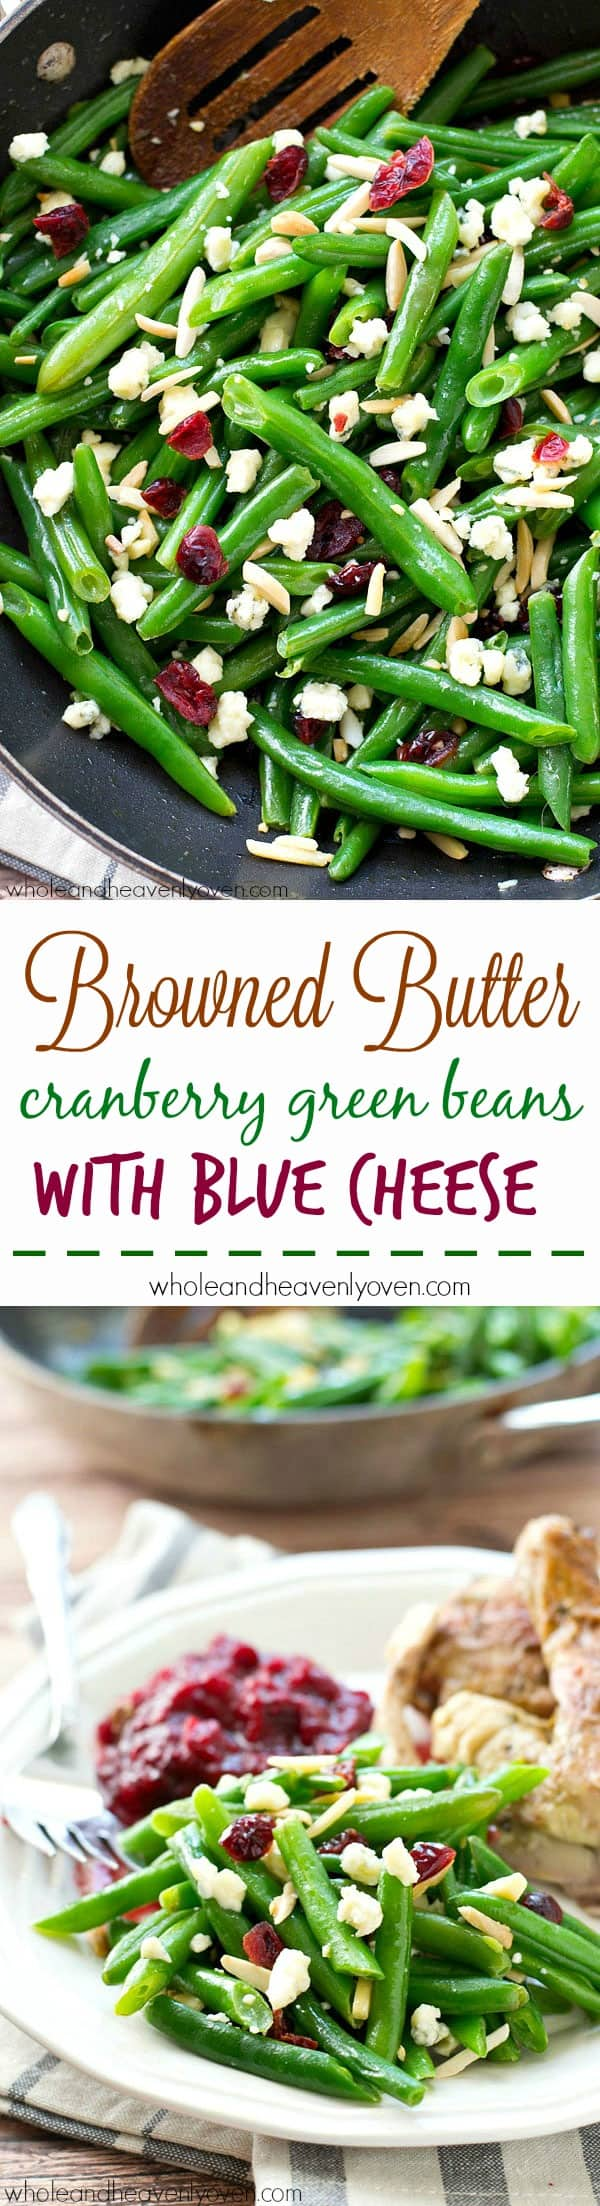 These holiday-style browned butter cranberry green beans are a breeze to throw together and the flavor combination is absolutely heavenly! @WholeHeavenly